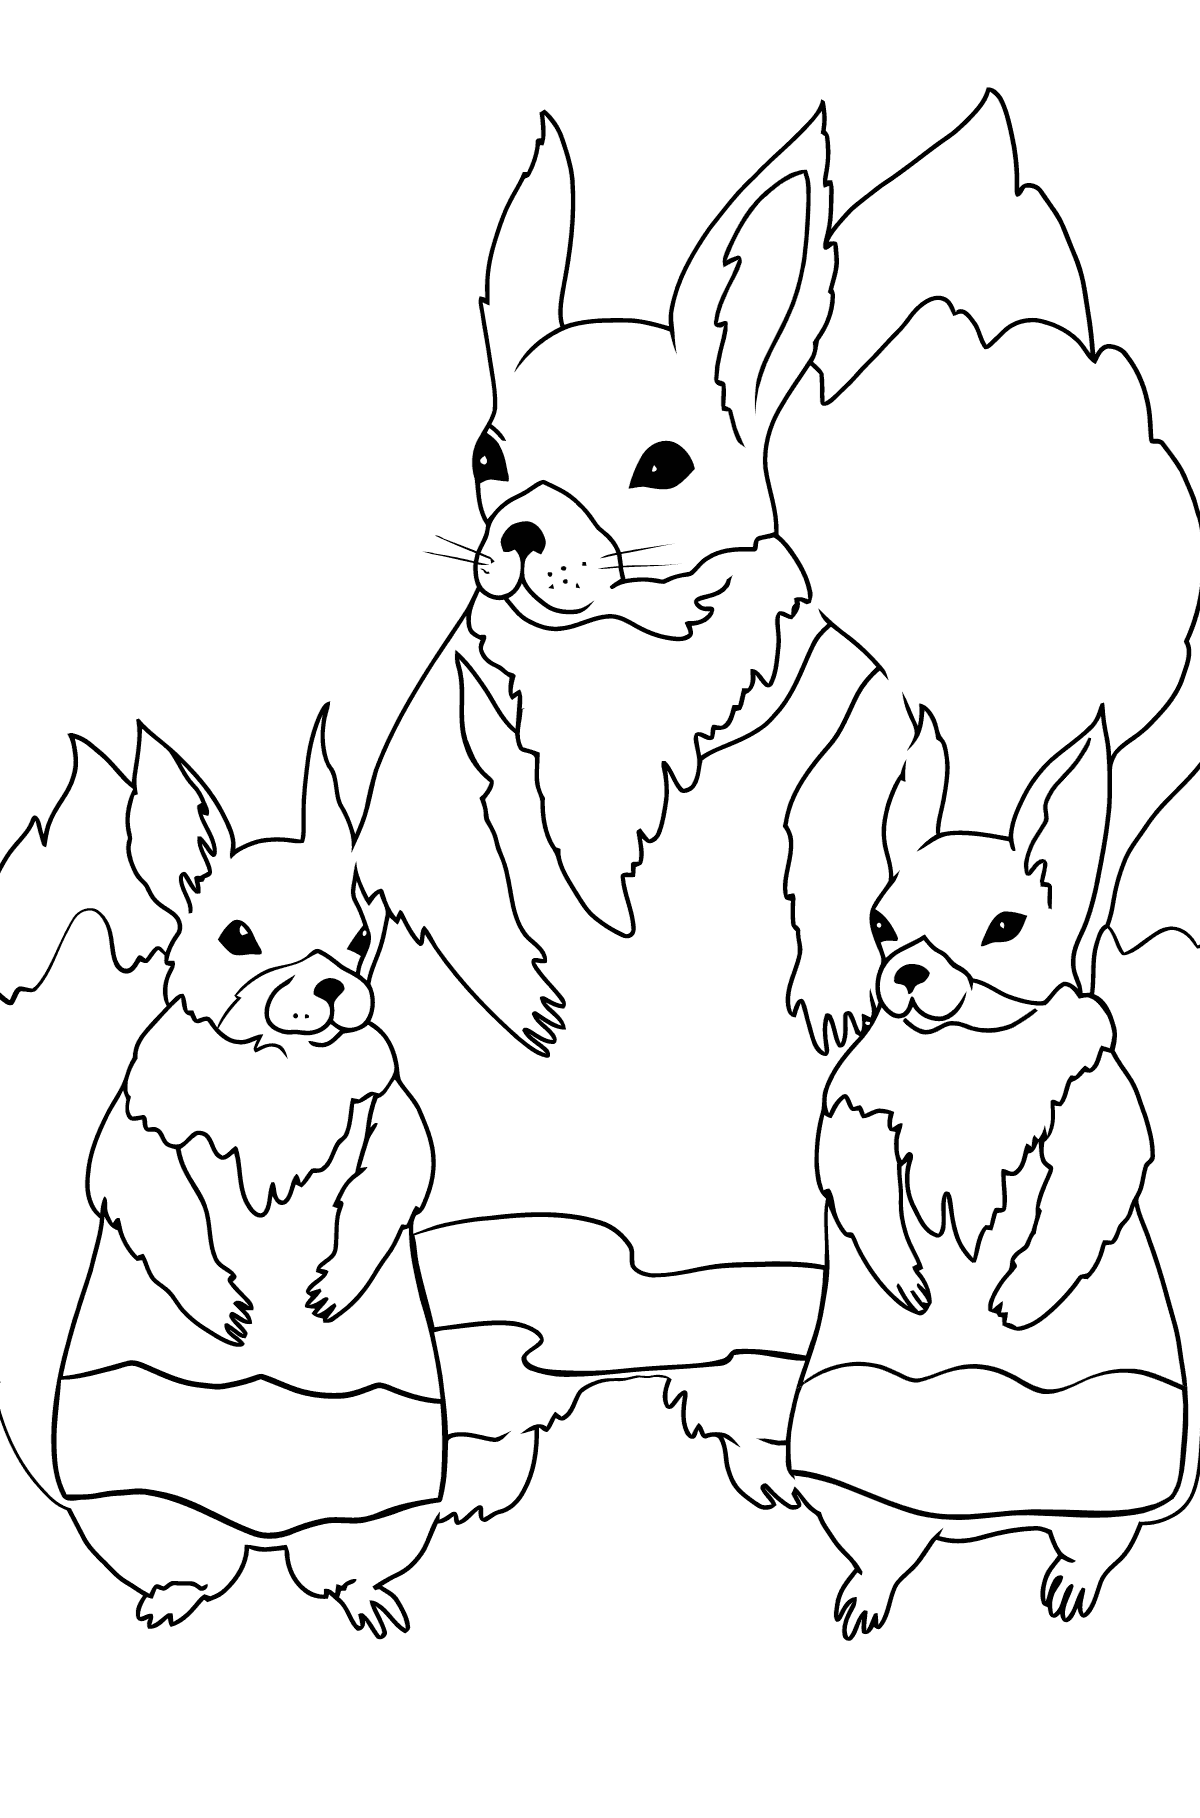 Spring Coloring Page - Squirrels are Preparing to Greet the Sun for Kids